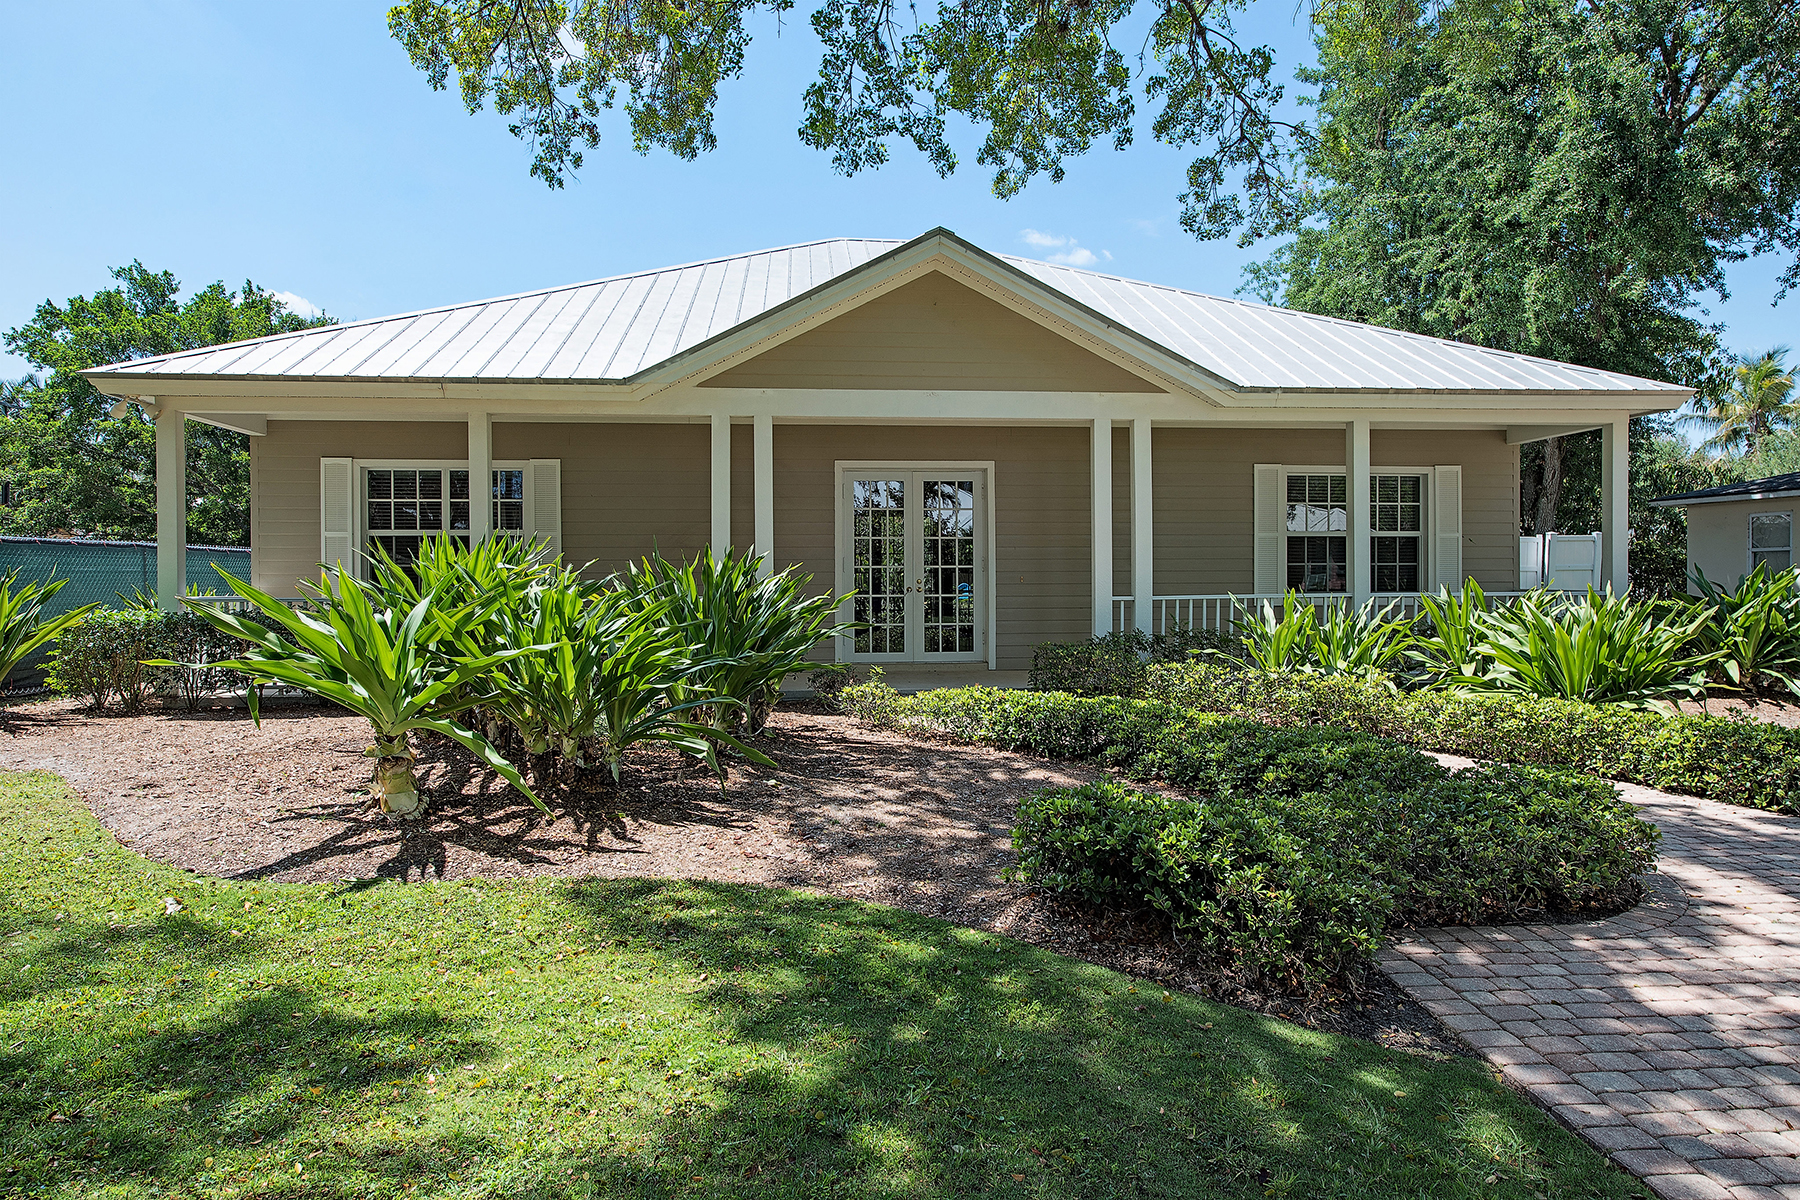 Single Family Home for Sale at OLDE NAPLES 430 2nd Ave N Naples, Florida, 34102 United States